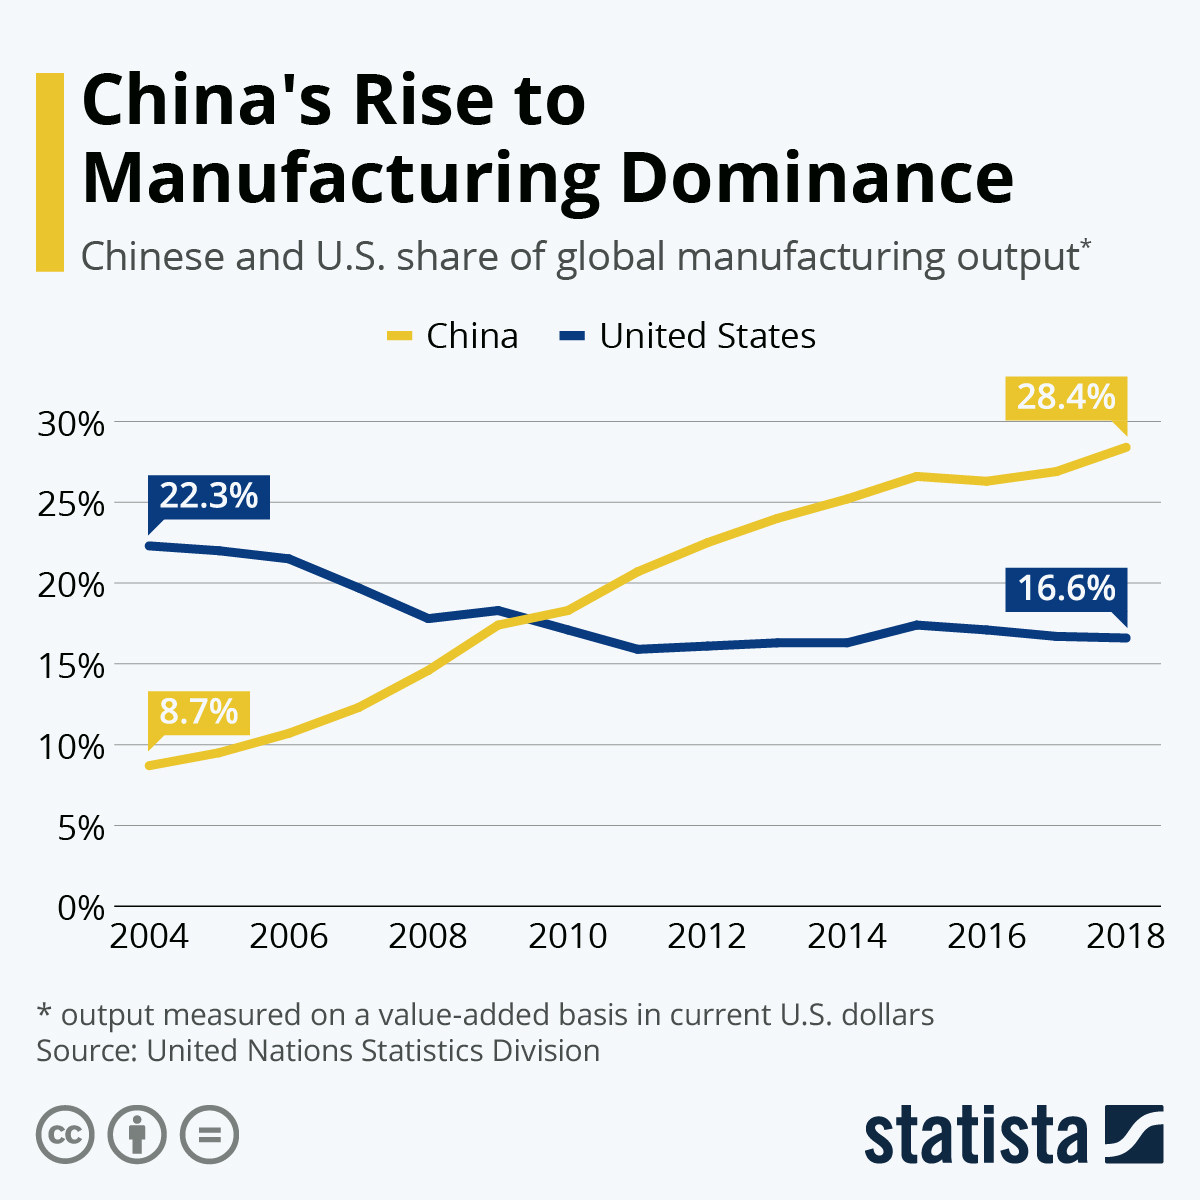 China's Rise to Manufacturing Dominance by Statista